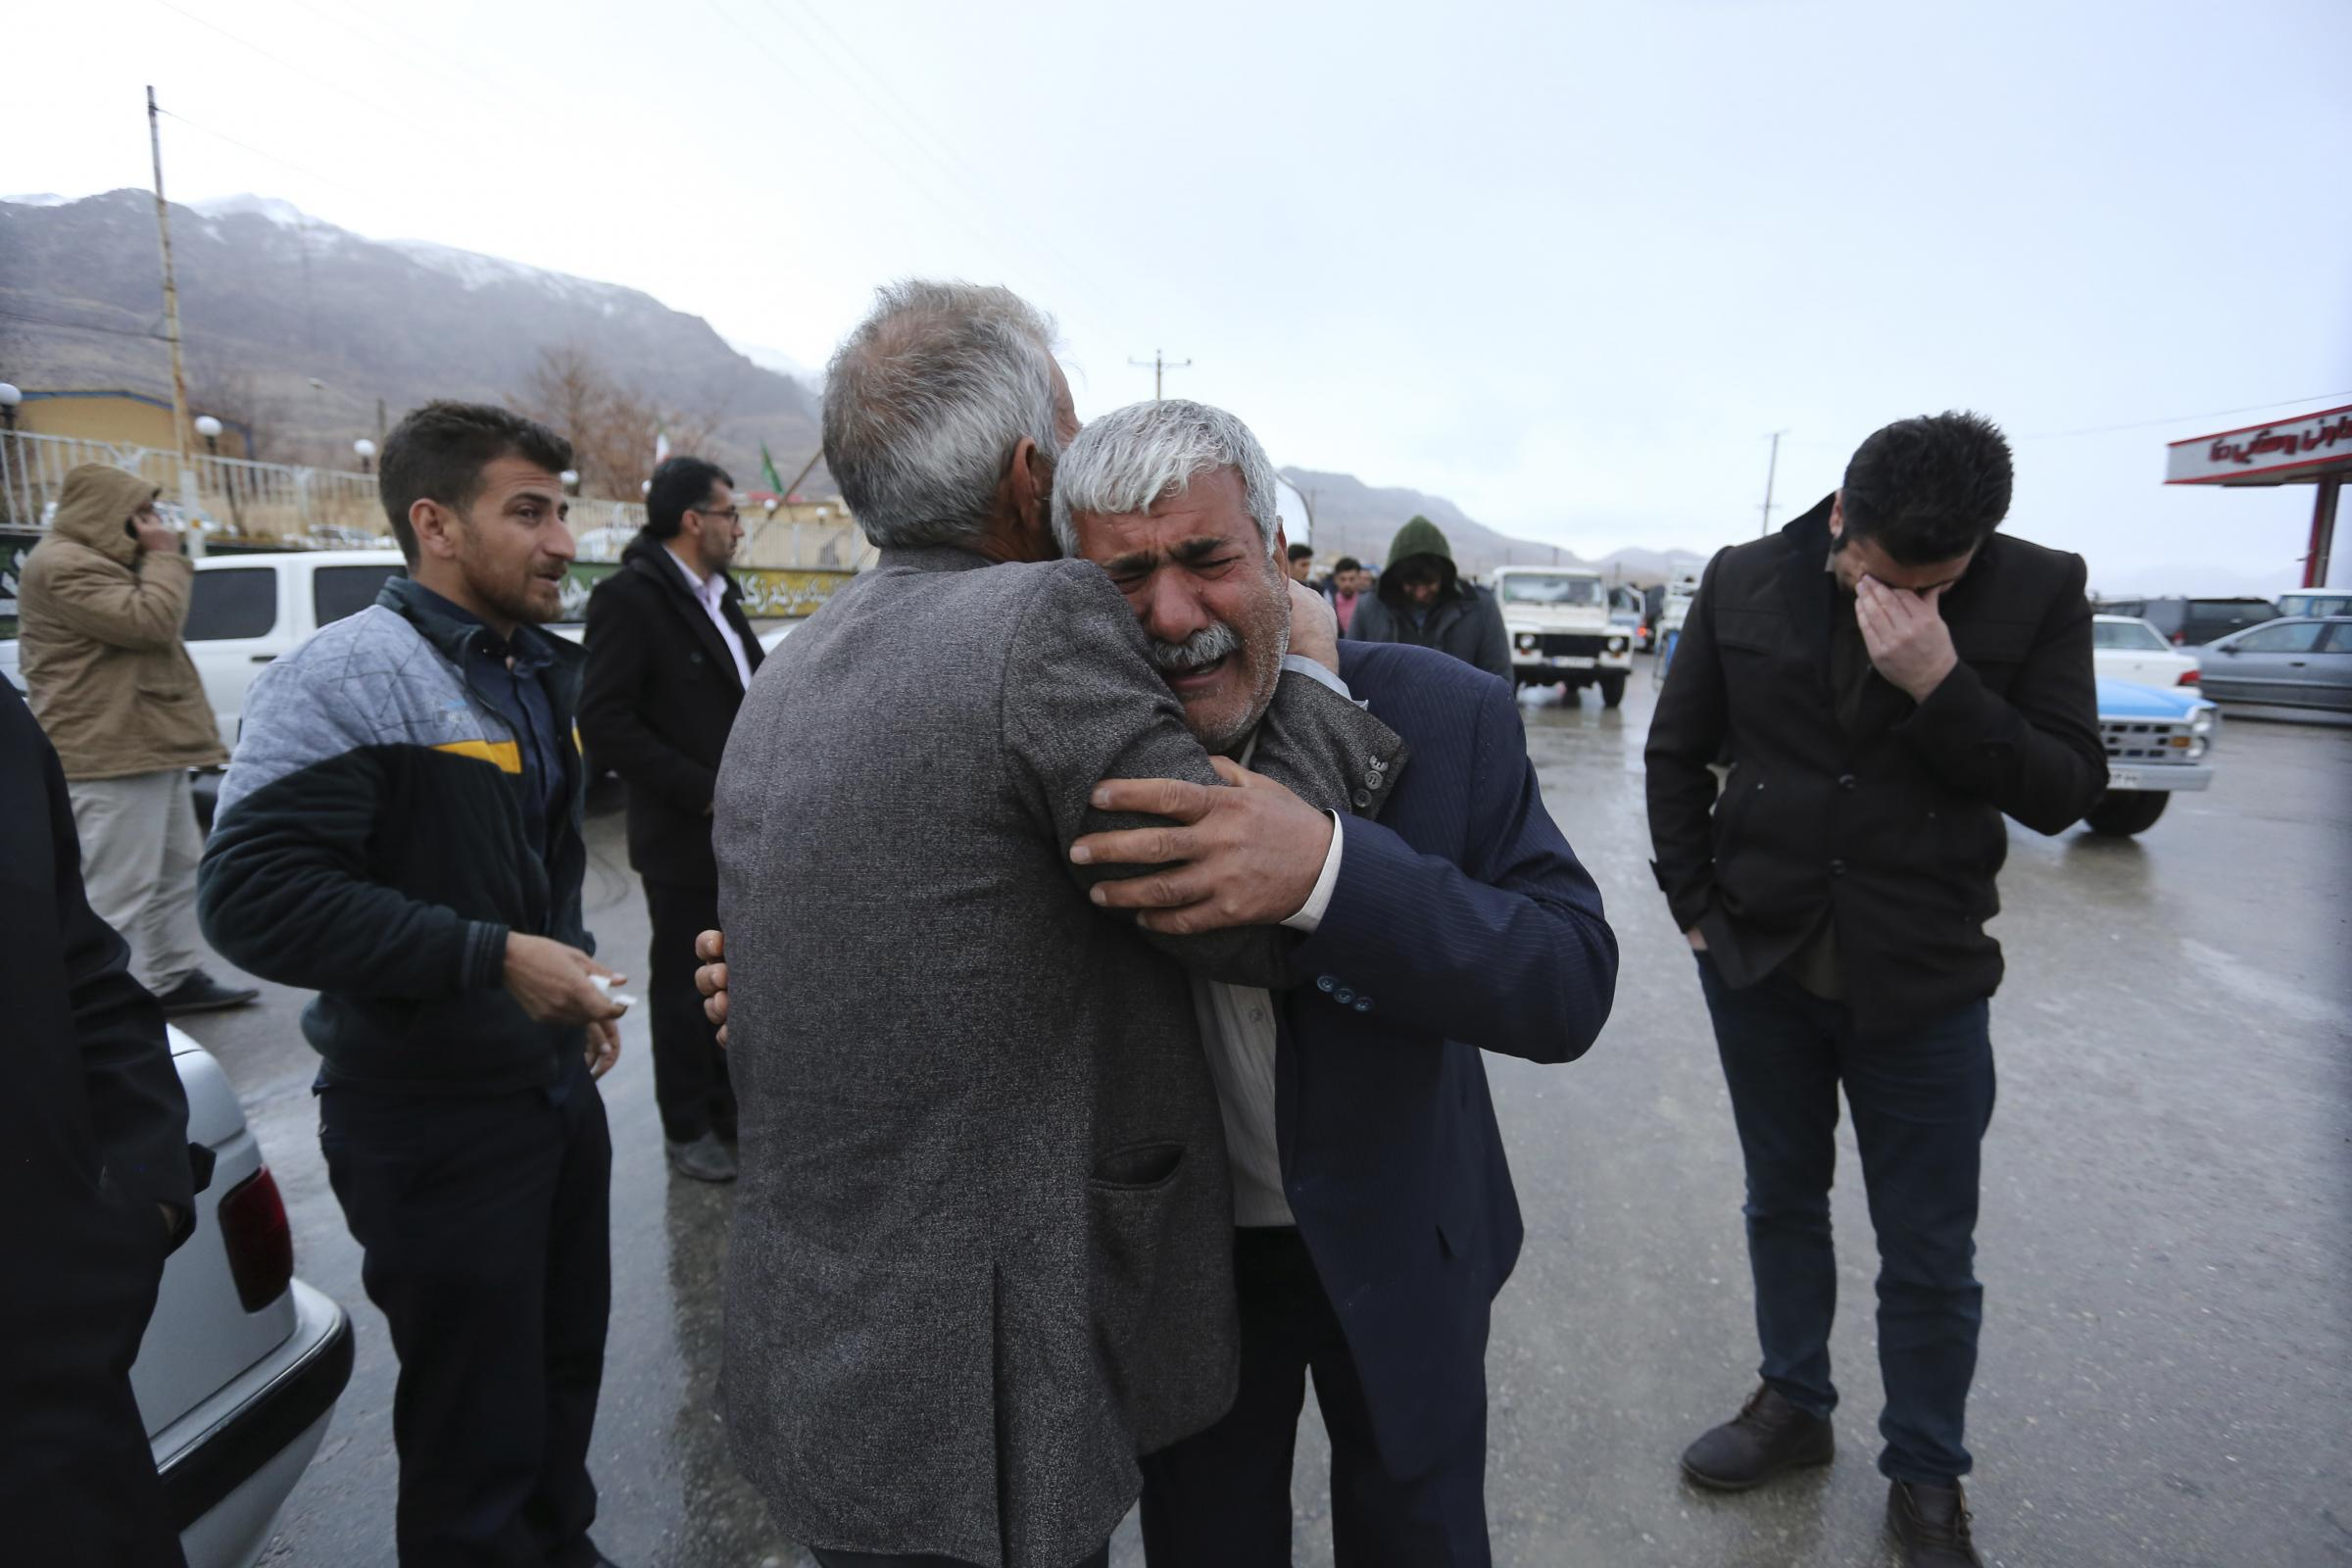 Family members of plane crash victims weep in the village of Bideh, at the area that the plane crashed, southern Iran (Ali Khodaei/Tasnim News Agency via AP)